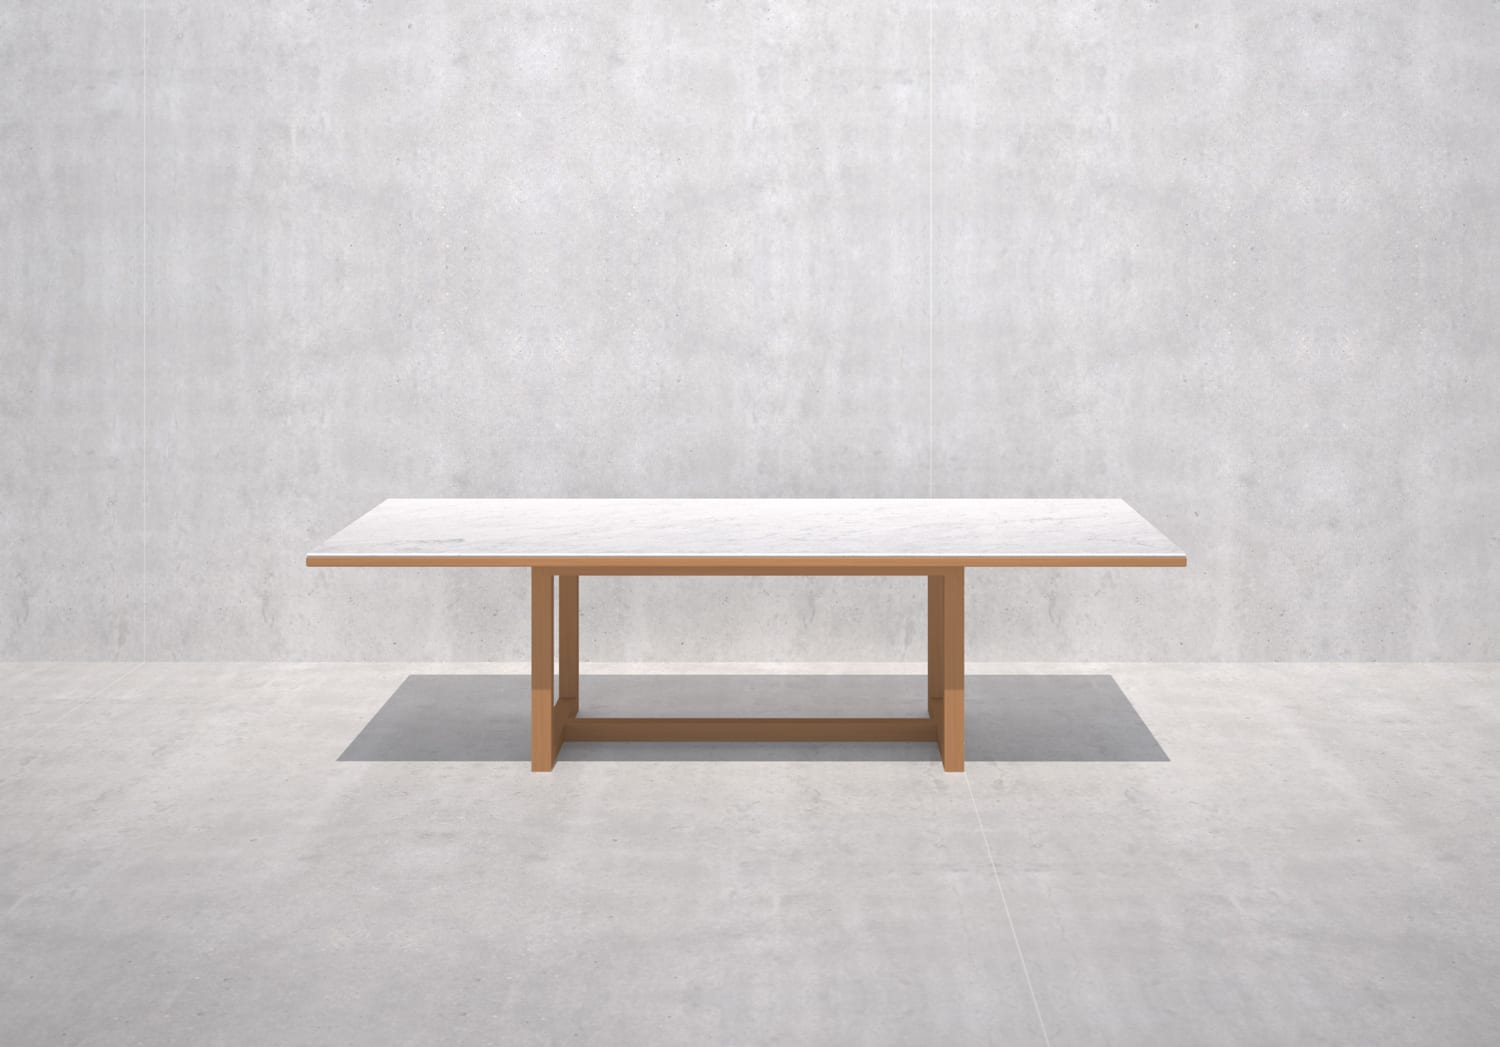 Salvatori Span Table by John Pawson, Milan Design Week 2018 Preview | Yellowtrace